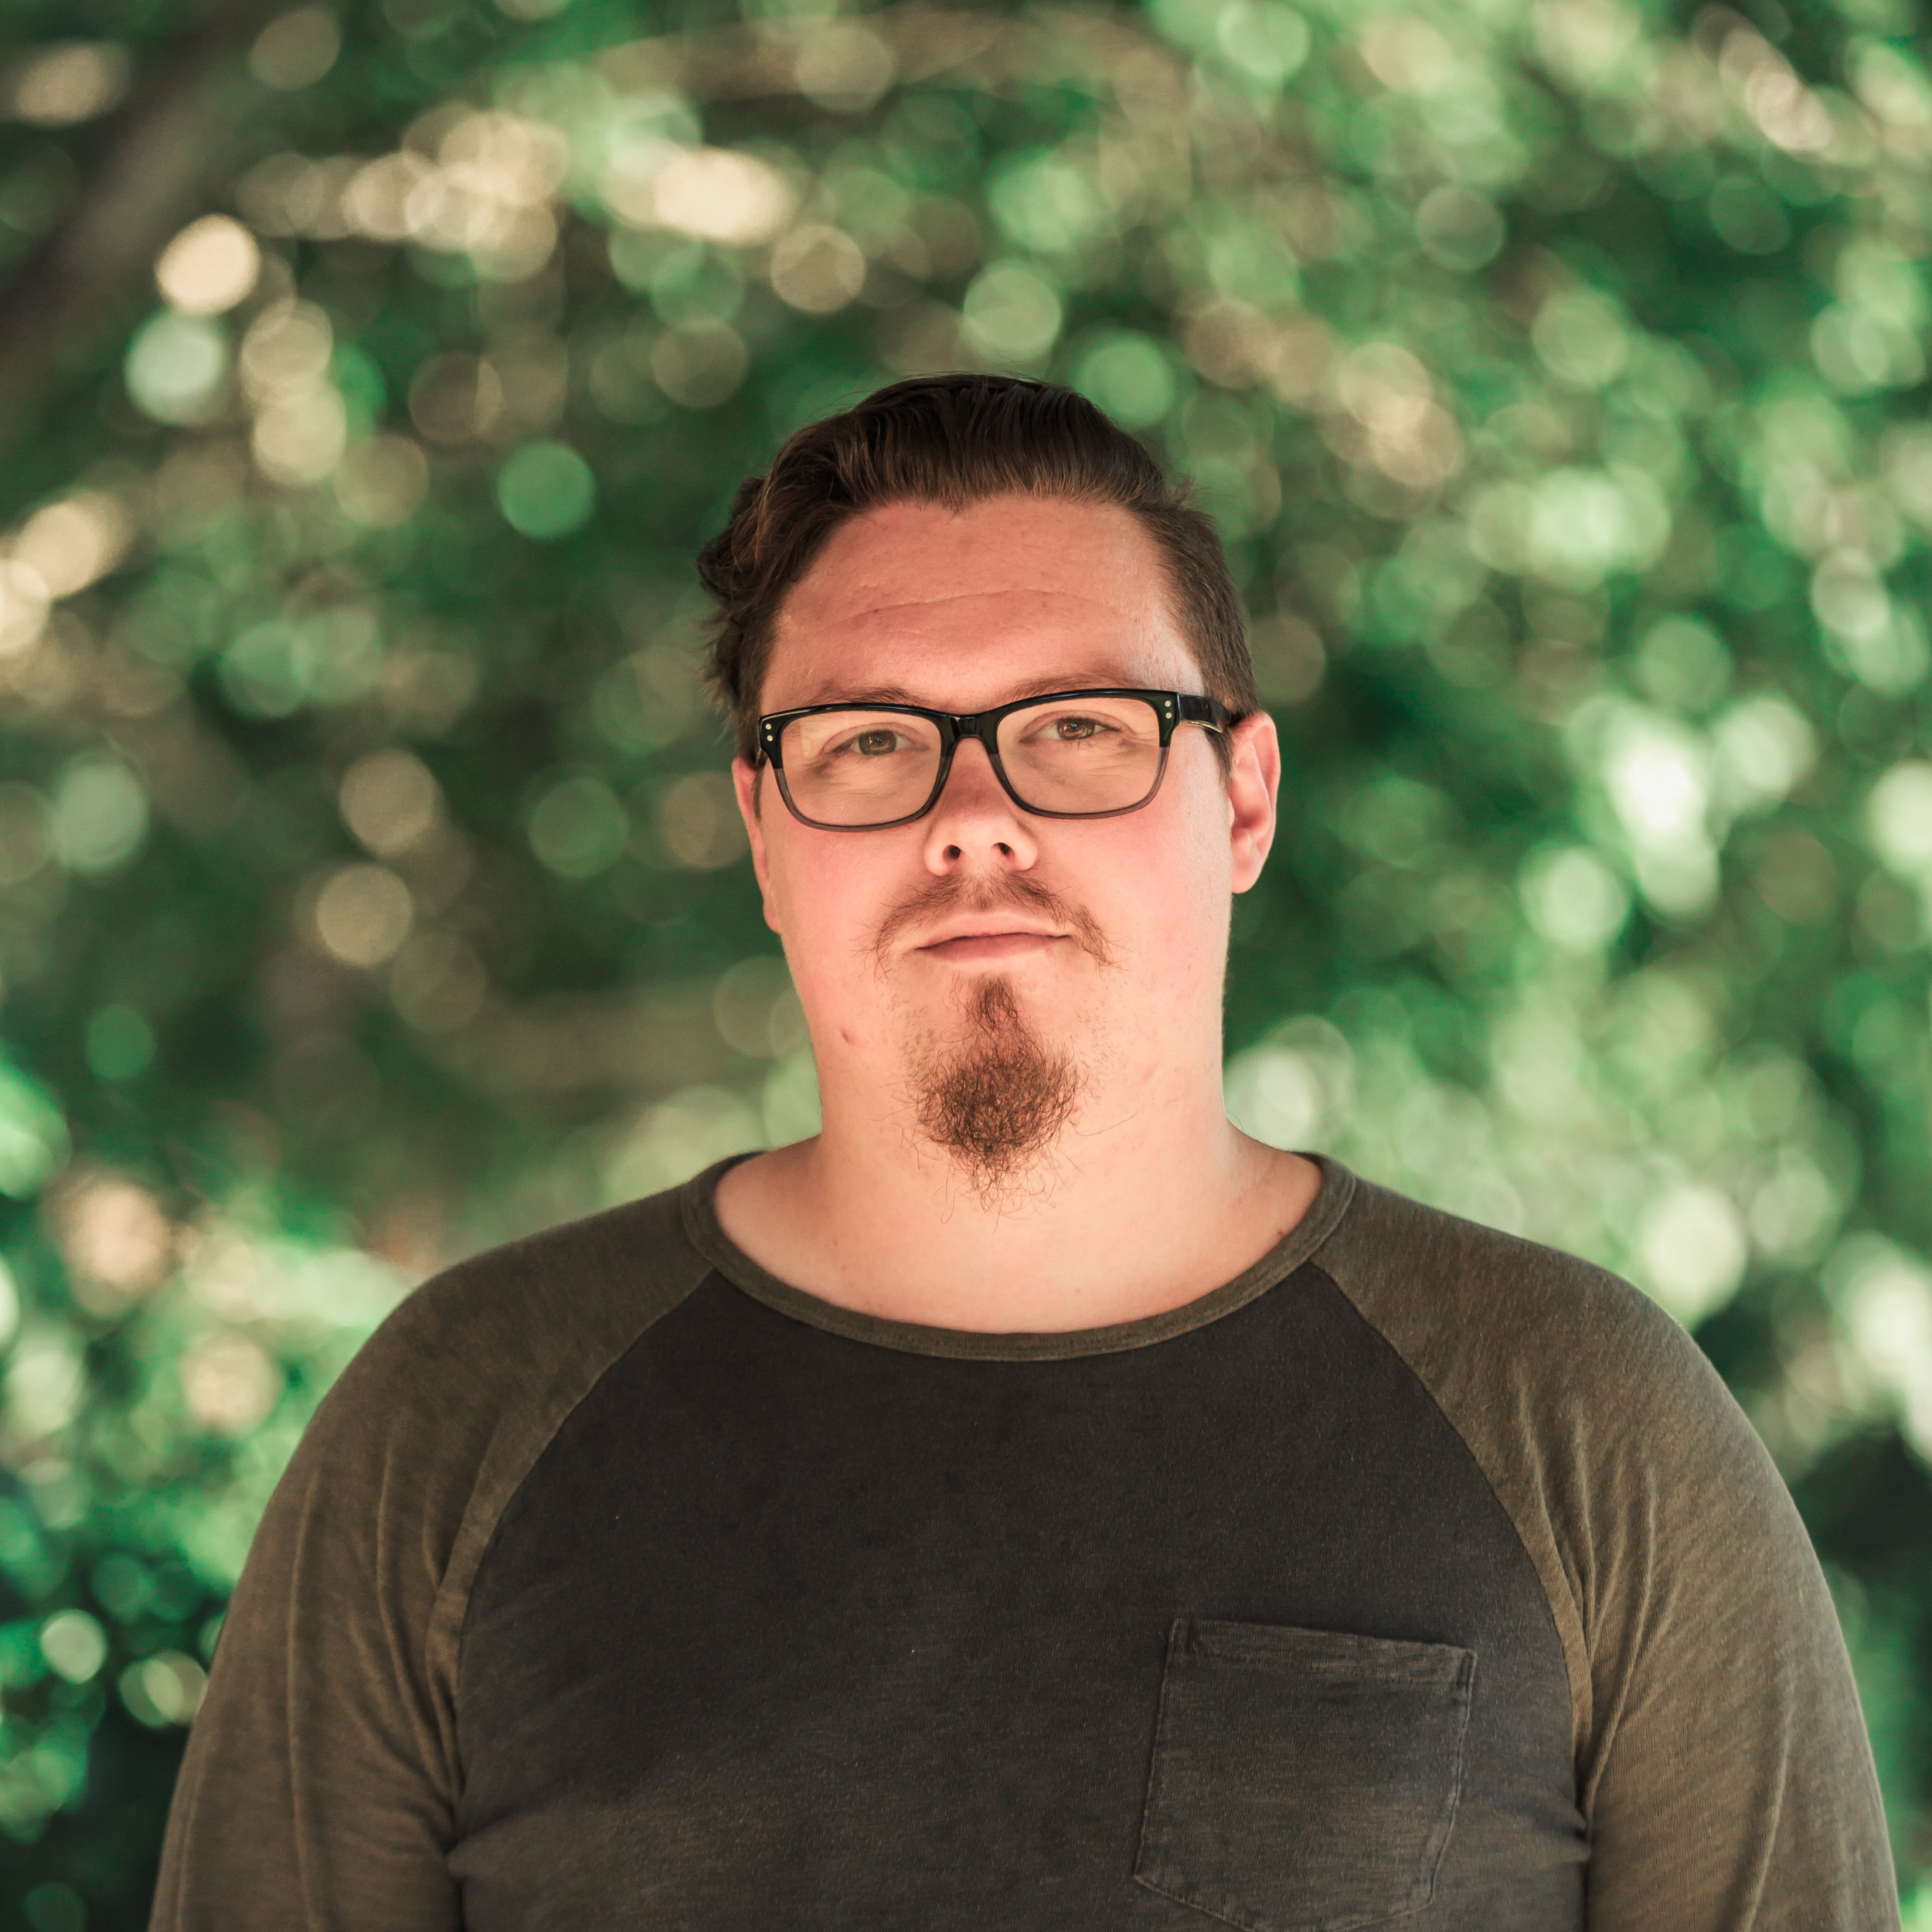 Joel Boyer, Online Campus Pastor   When asked what his favorites are:  Scripture: 1 Thess. 2:12  Ice Cream: Trader Joe's Coffee Flavor  Book: The Screwtape Letters  Bonus: He will be a Dad in 5 weeks!